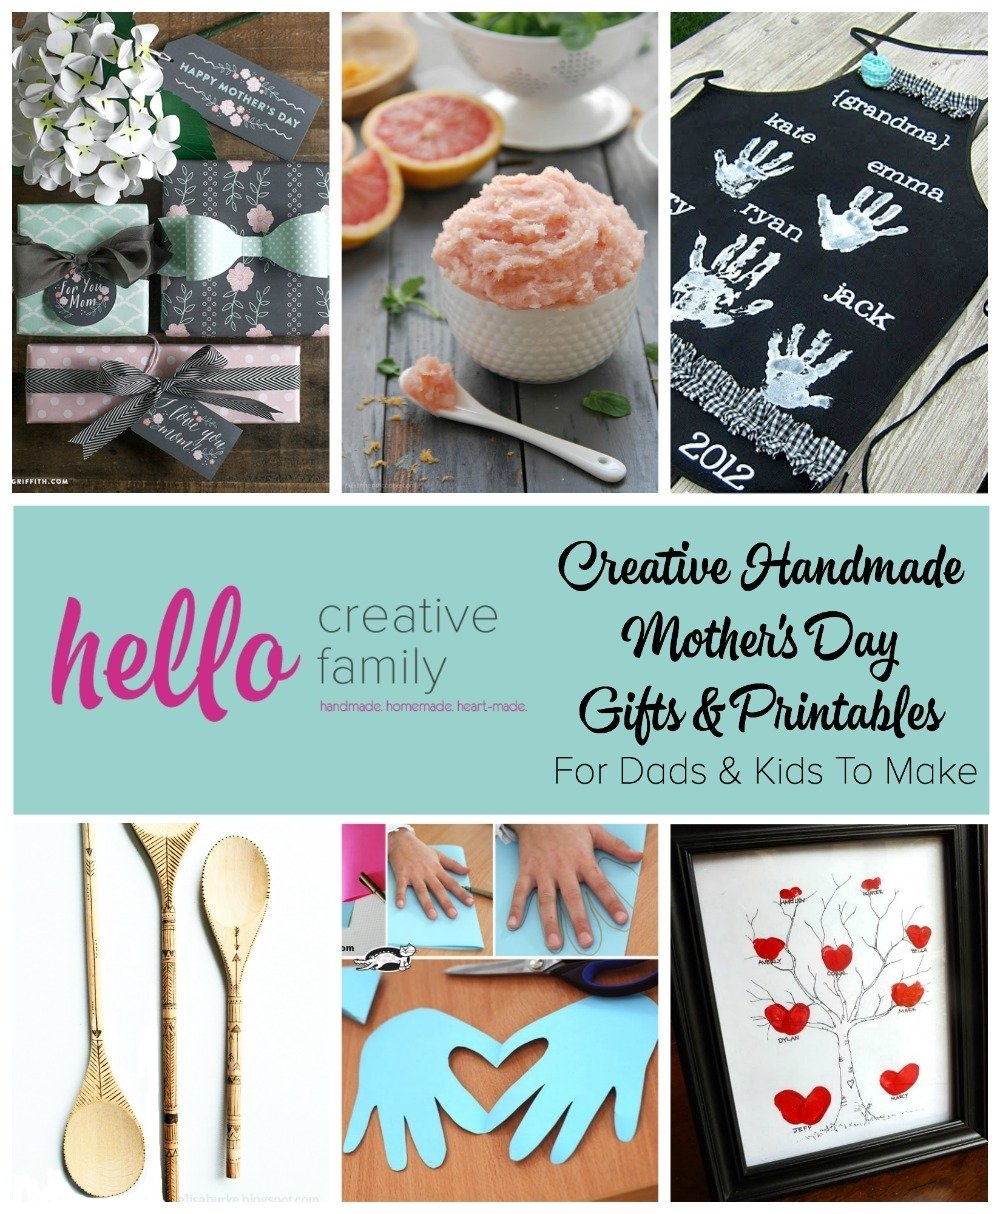 10 Trendy Creative Ideas For Mothers Day creative handmade mothers day gifts and printables for dads and kids 3 2020